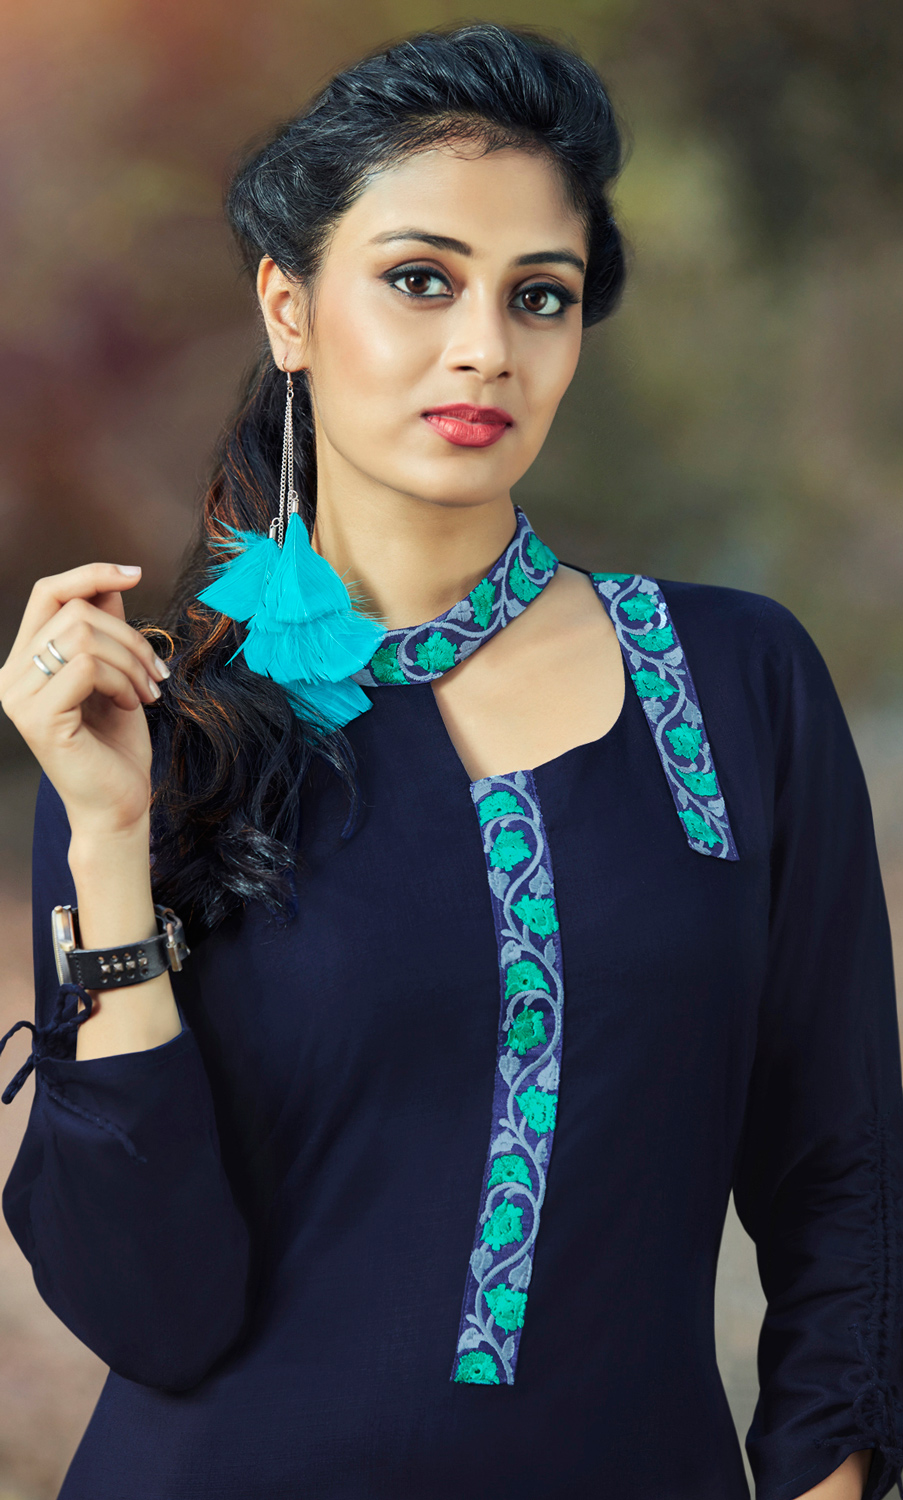 Naughty Navy Blue Colored Embroidered Cotton Kurti